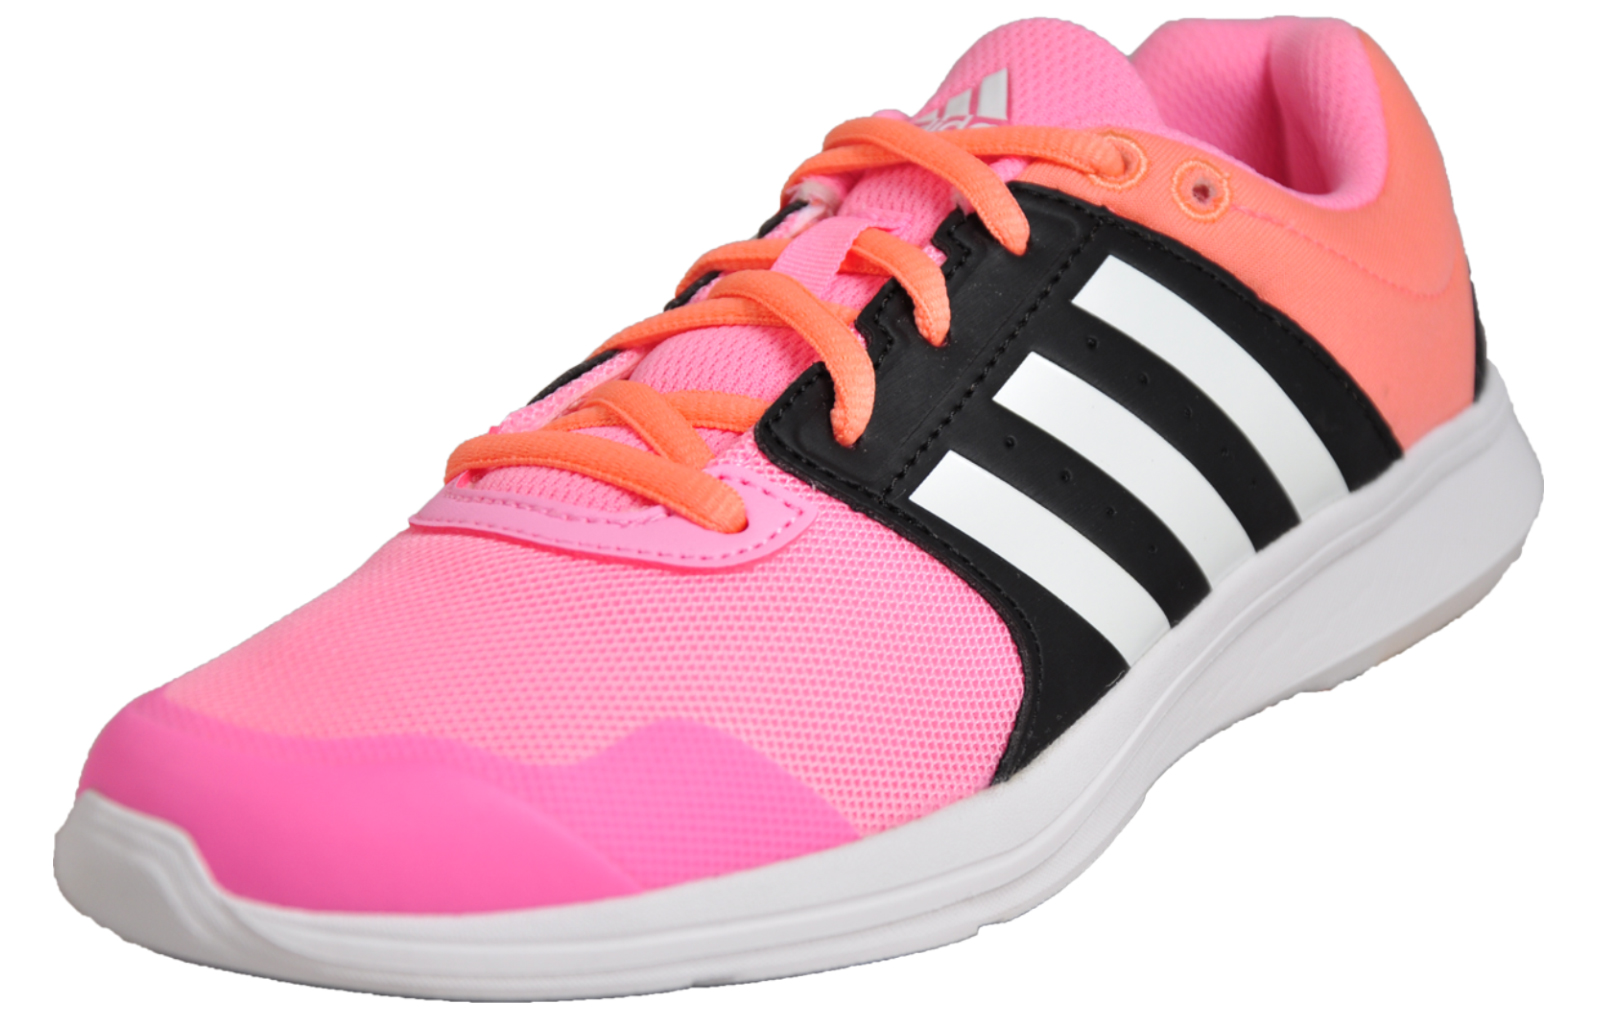 new style 6401b f4785 Adidas Essential Fun 2 Womens - AD174821. alternate view 2. alternate view 1